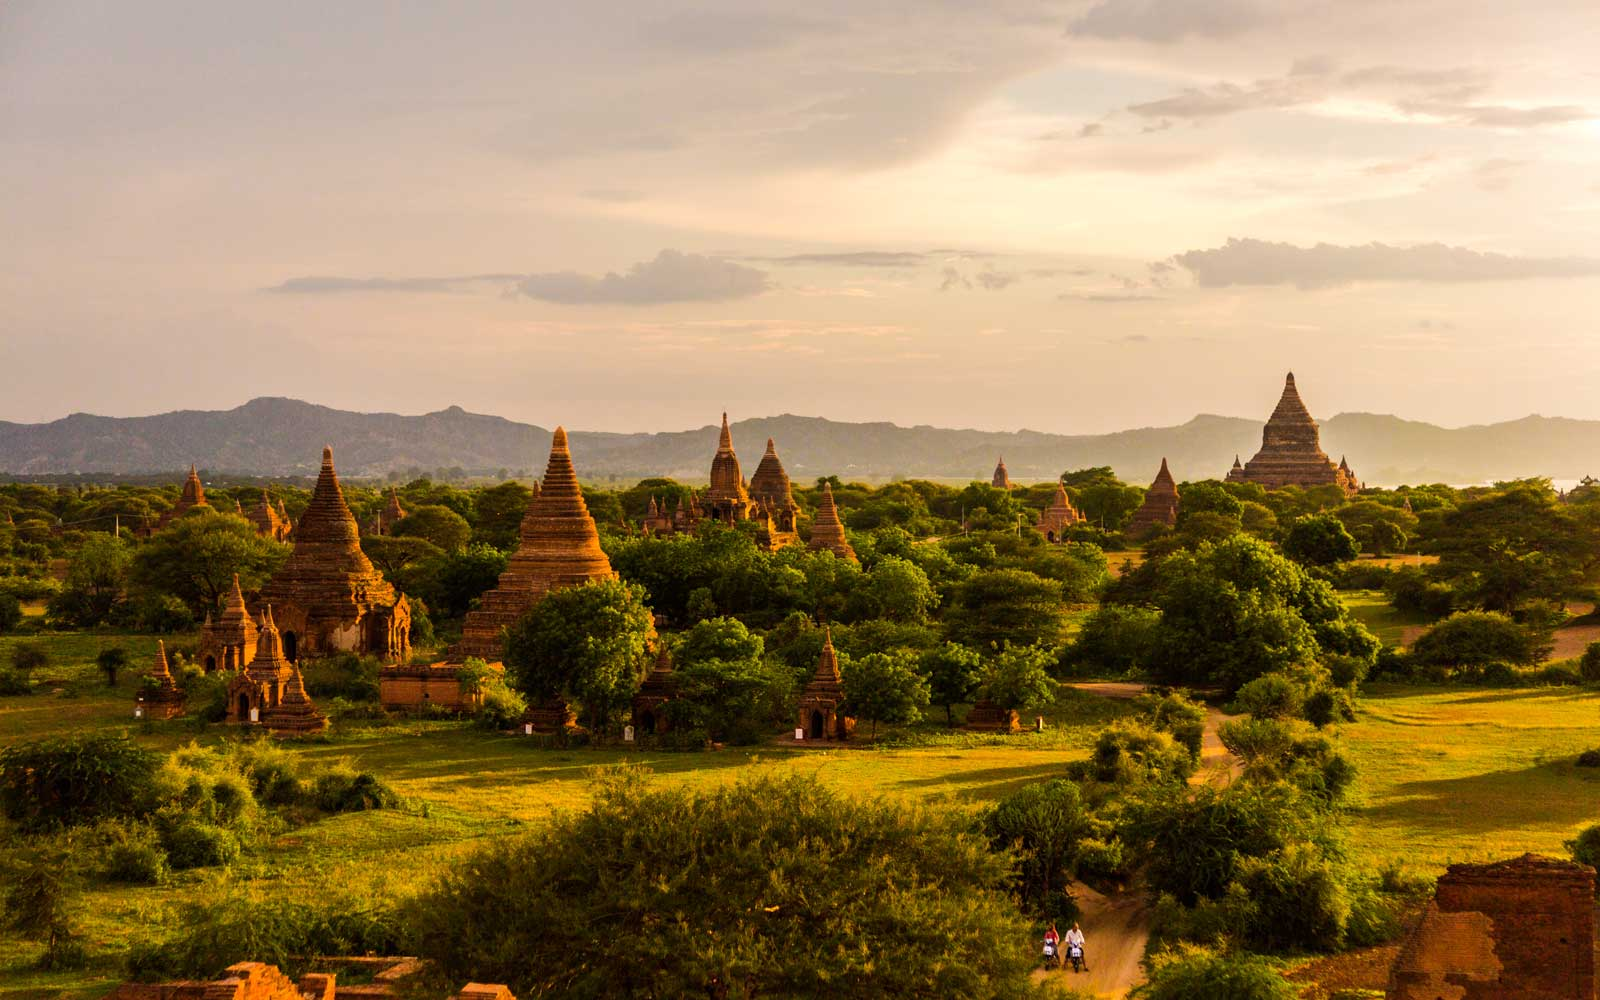 Why You Should Visit the Quiet Tranquility of Bagan Before It's Too Late